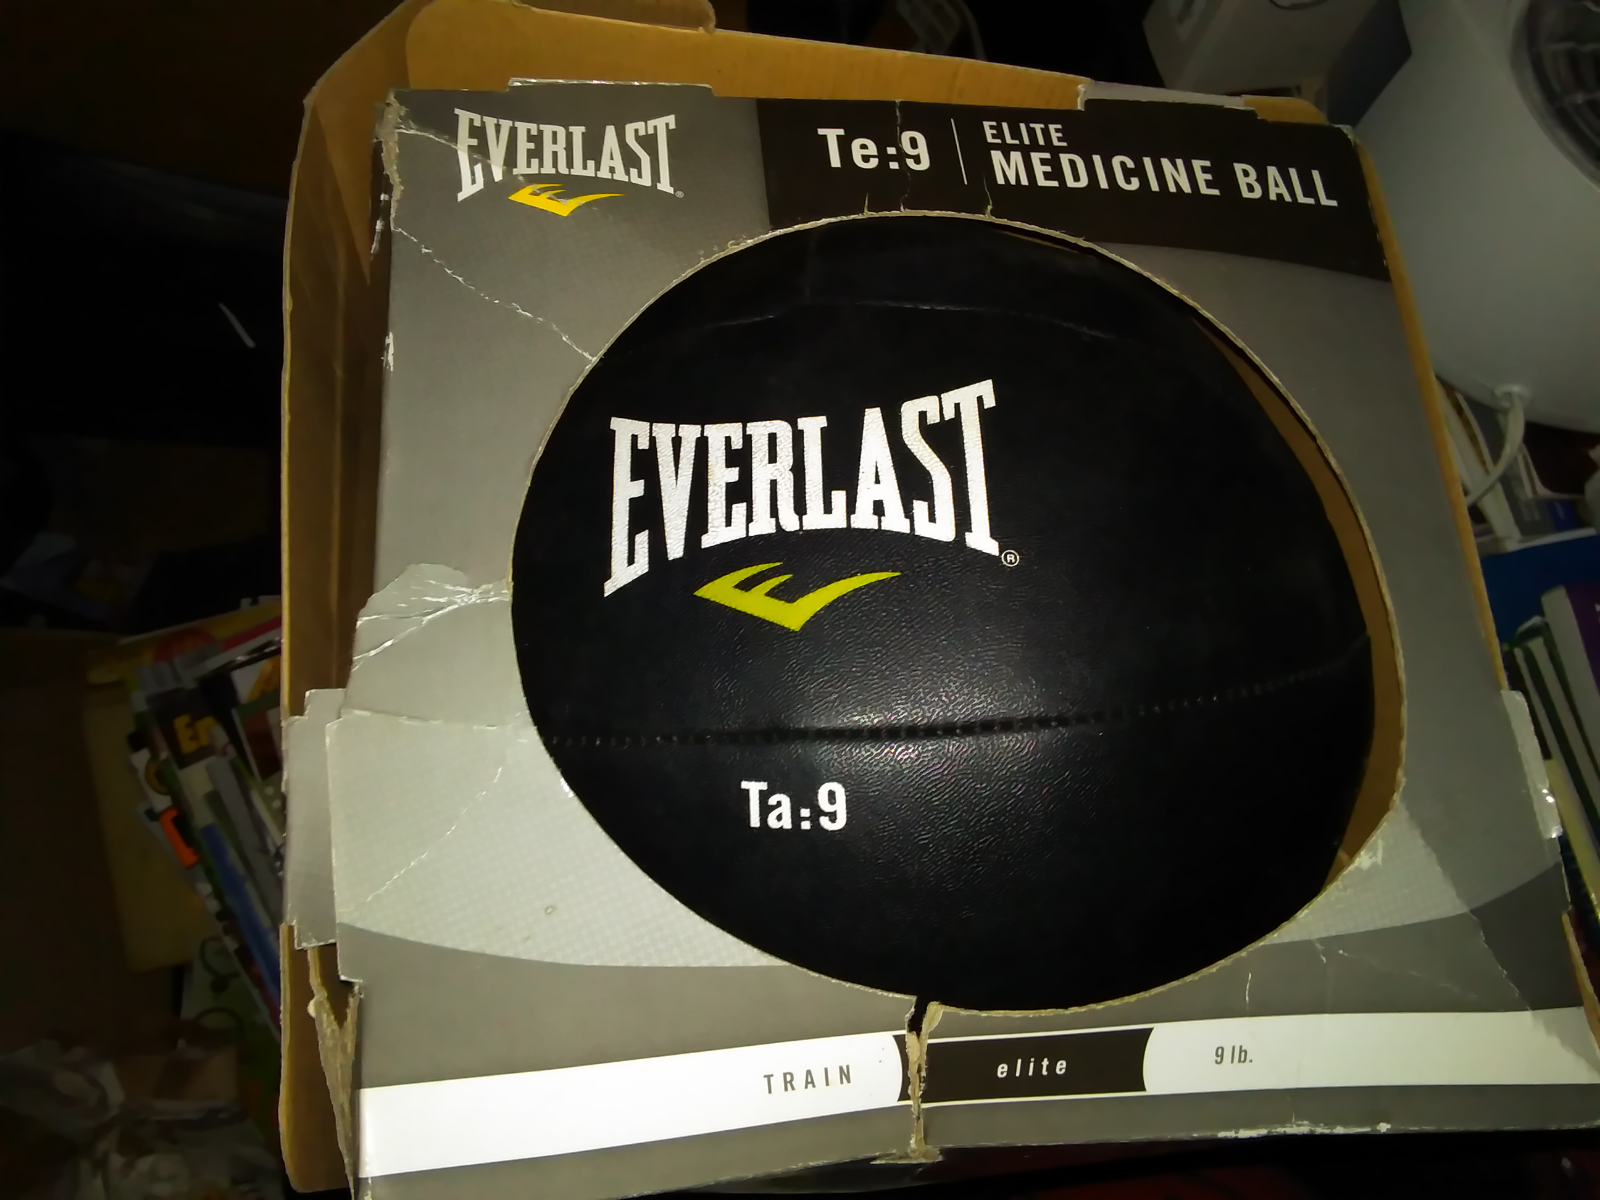 NEW Everlast Te:9 Elite Medicine Ball 9 lbs